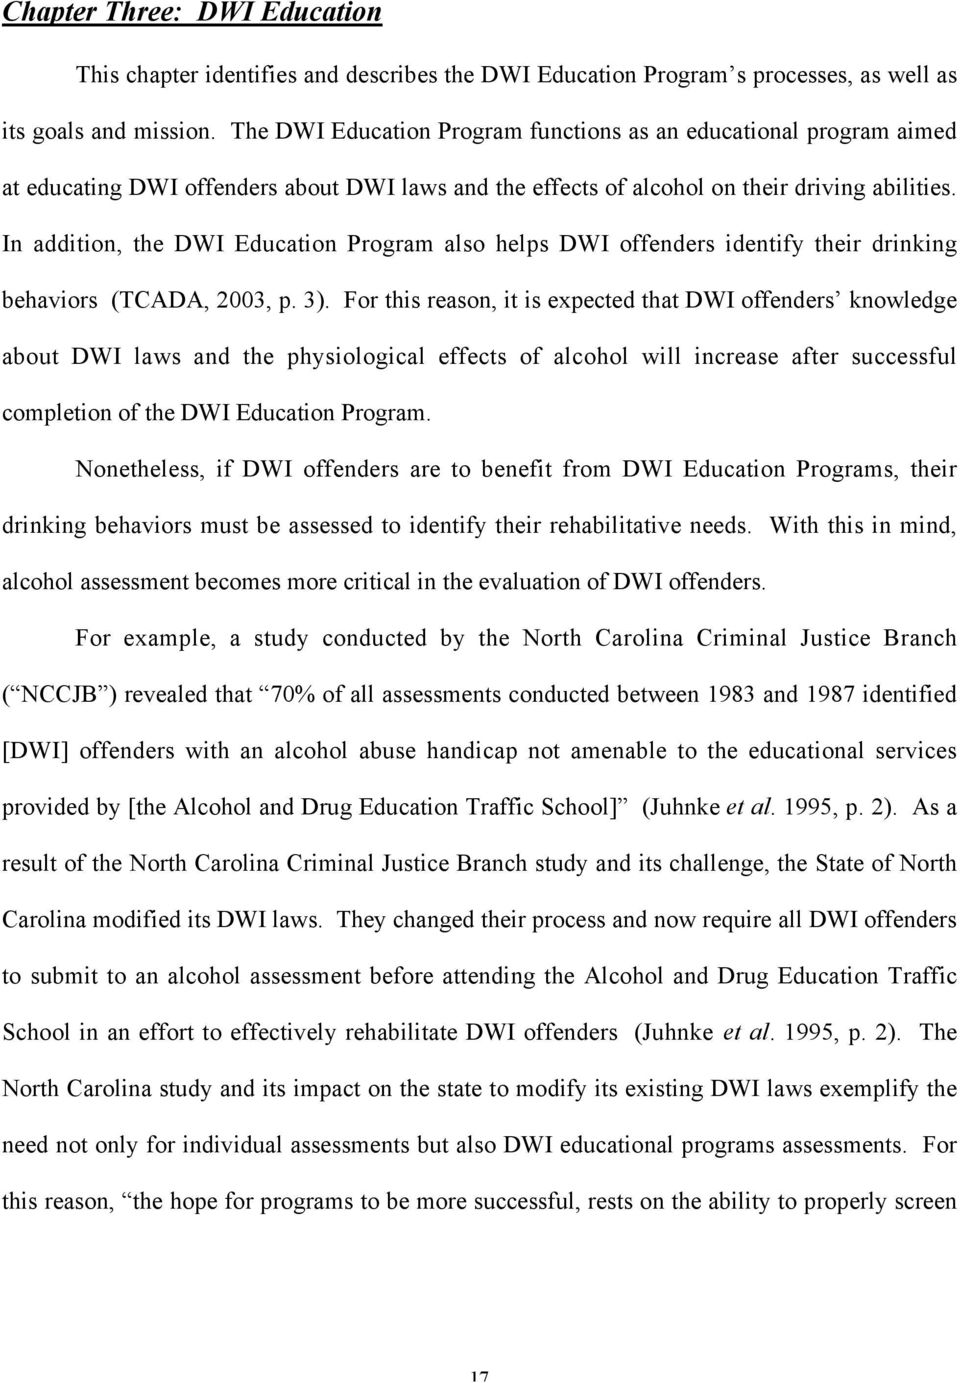 In addition, the DWI Education Program also helps DWI offenders identify their drinking behaviors (TCADA, 2003, p. 3).